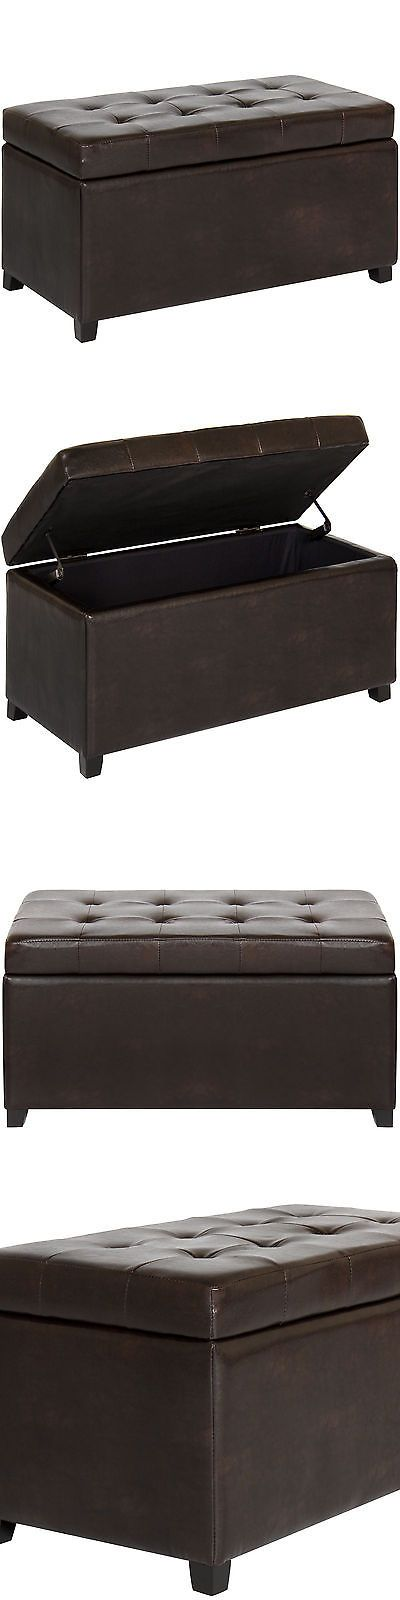 Ottomans Footstools and Poufs 20490: Best Choice Products Home Folding Leather Storage Ottoman Bench Footrest- Brown -> BUY IT NOW ONLY: $64.95 on eBay!